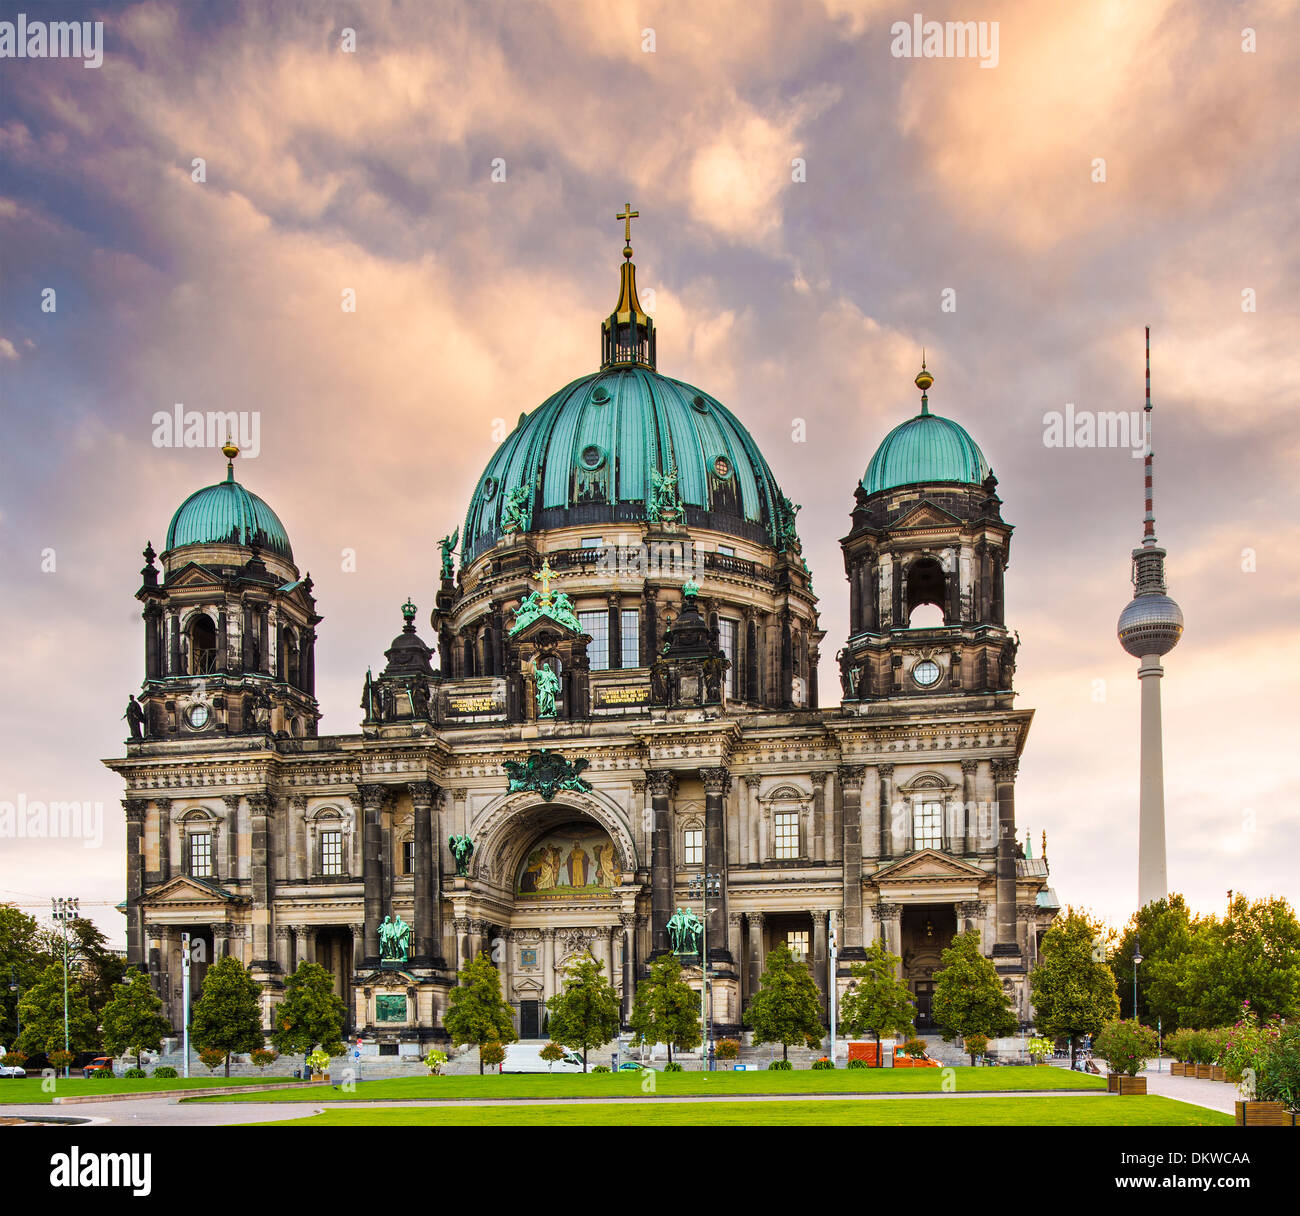 Cathédrale de Berlin, Allemagne. Photo Stock